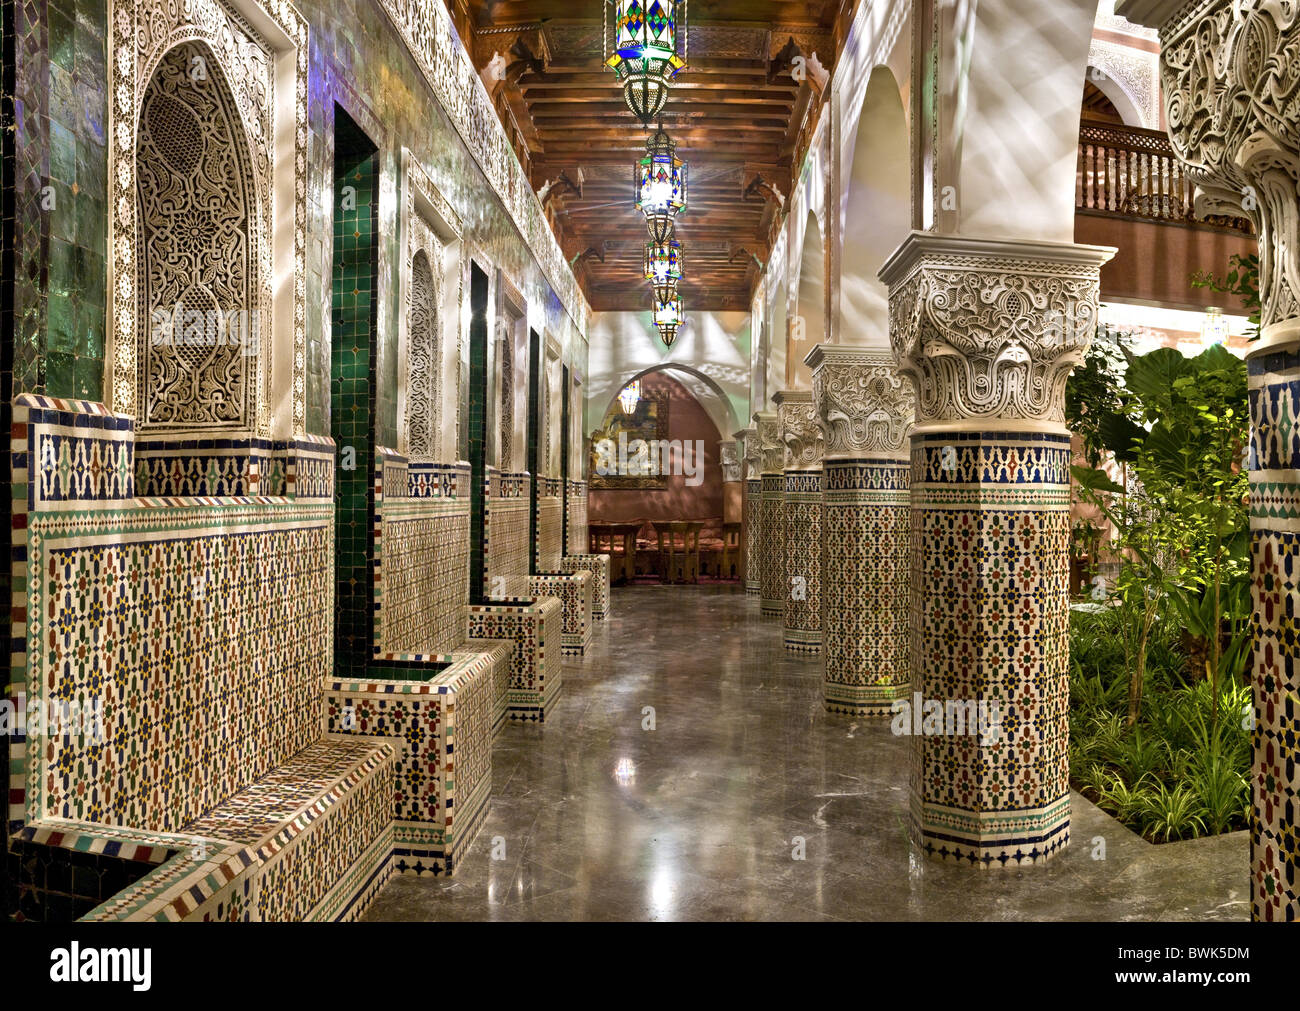 Interior courtyard riad la sultana luxury hotel marrakech stock photo roy - Photo riad marrakech ...